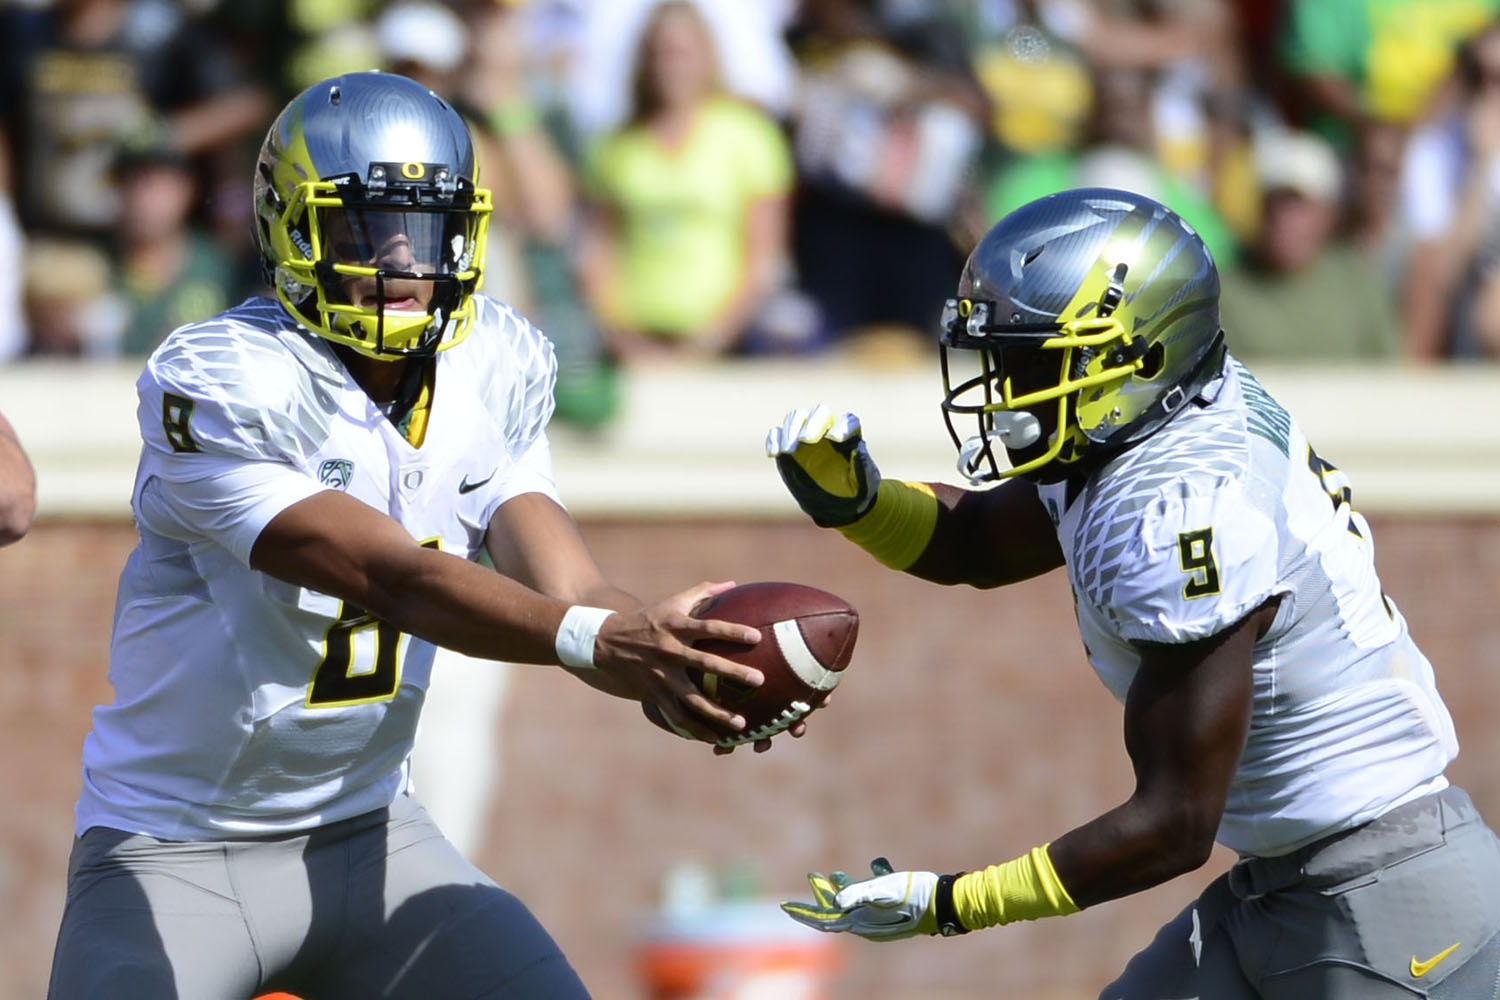 Oregon Ducks quarterback Marcus Mariota (8) hands the ball off to running back Byron Marshall (9) in the first quarter at Scott Stadium. (Bob Donnan/USA TODAY Sports)